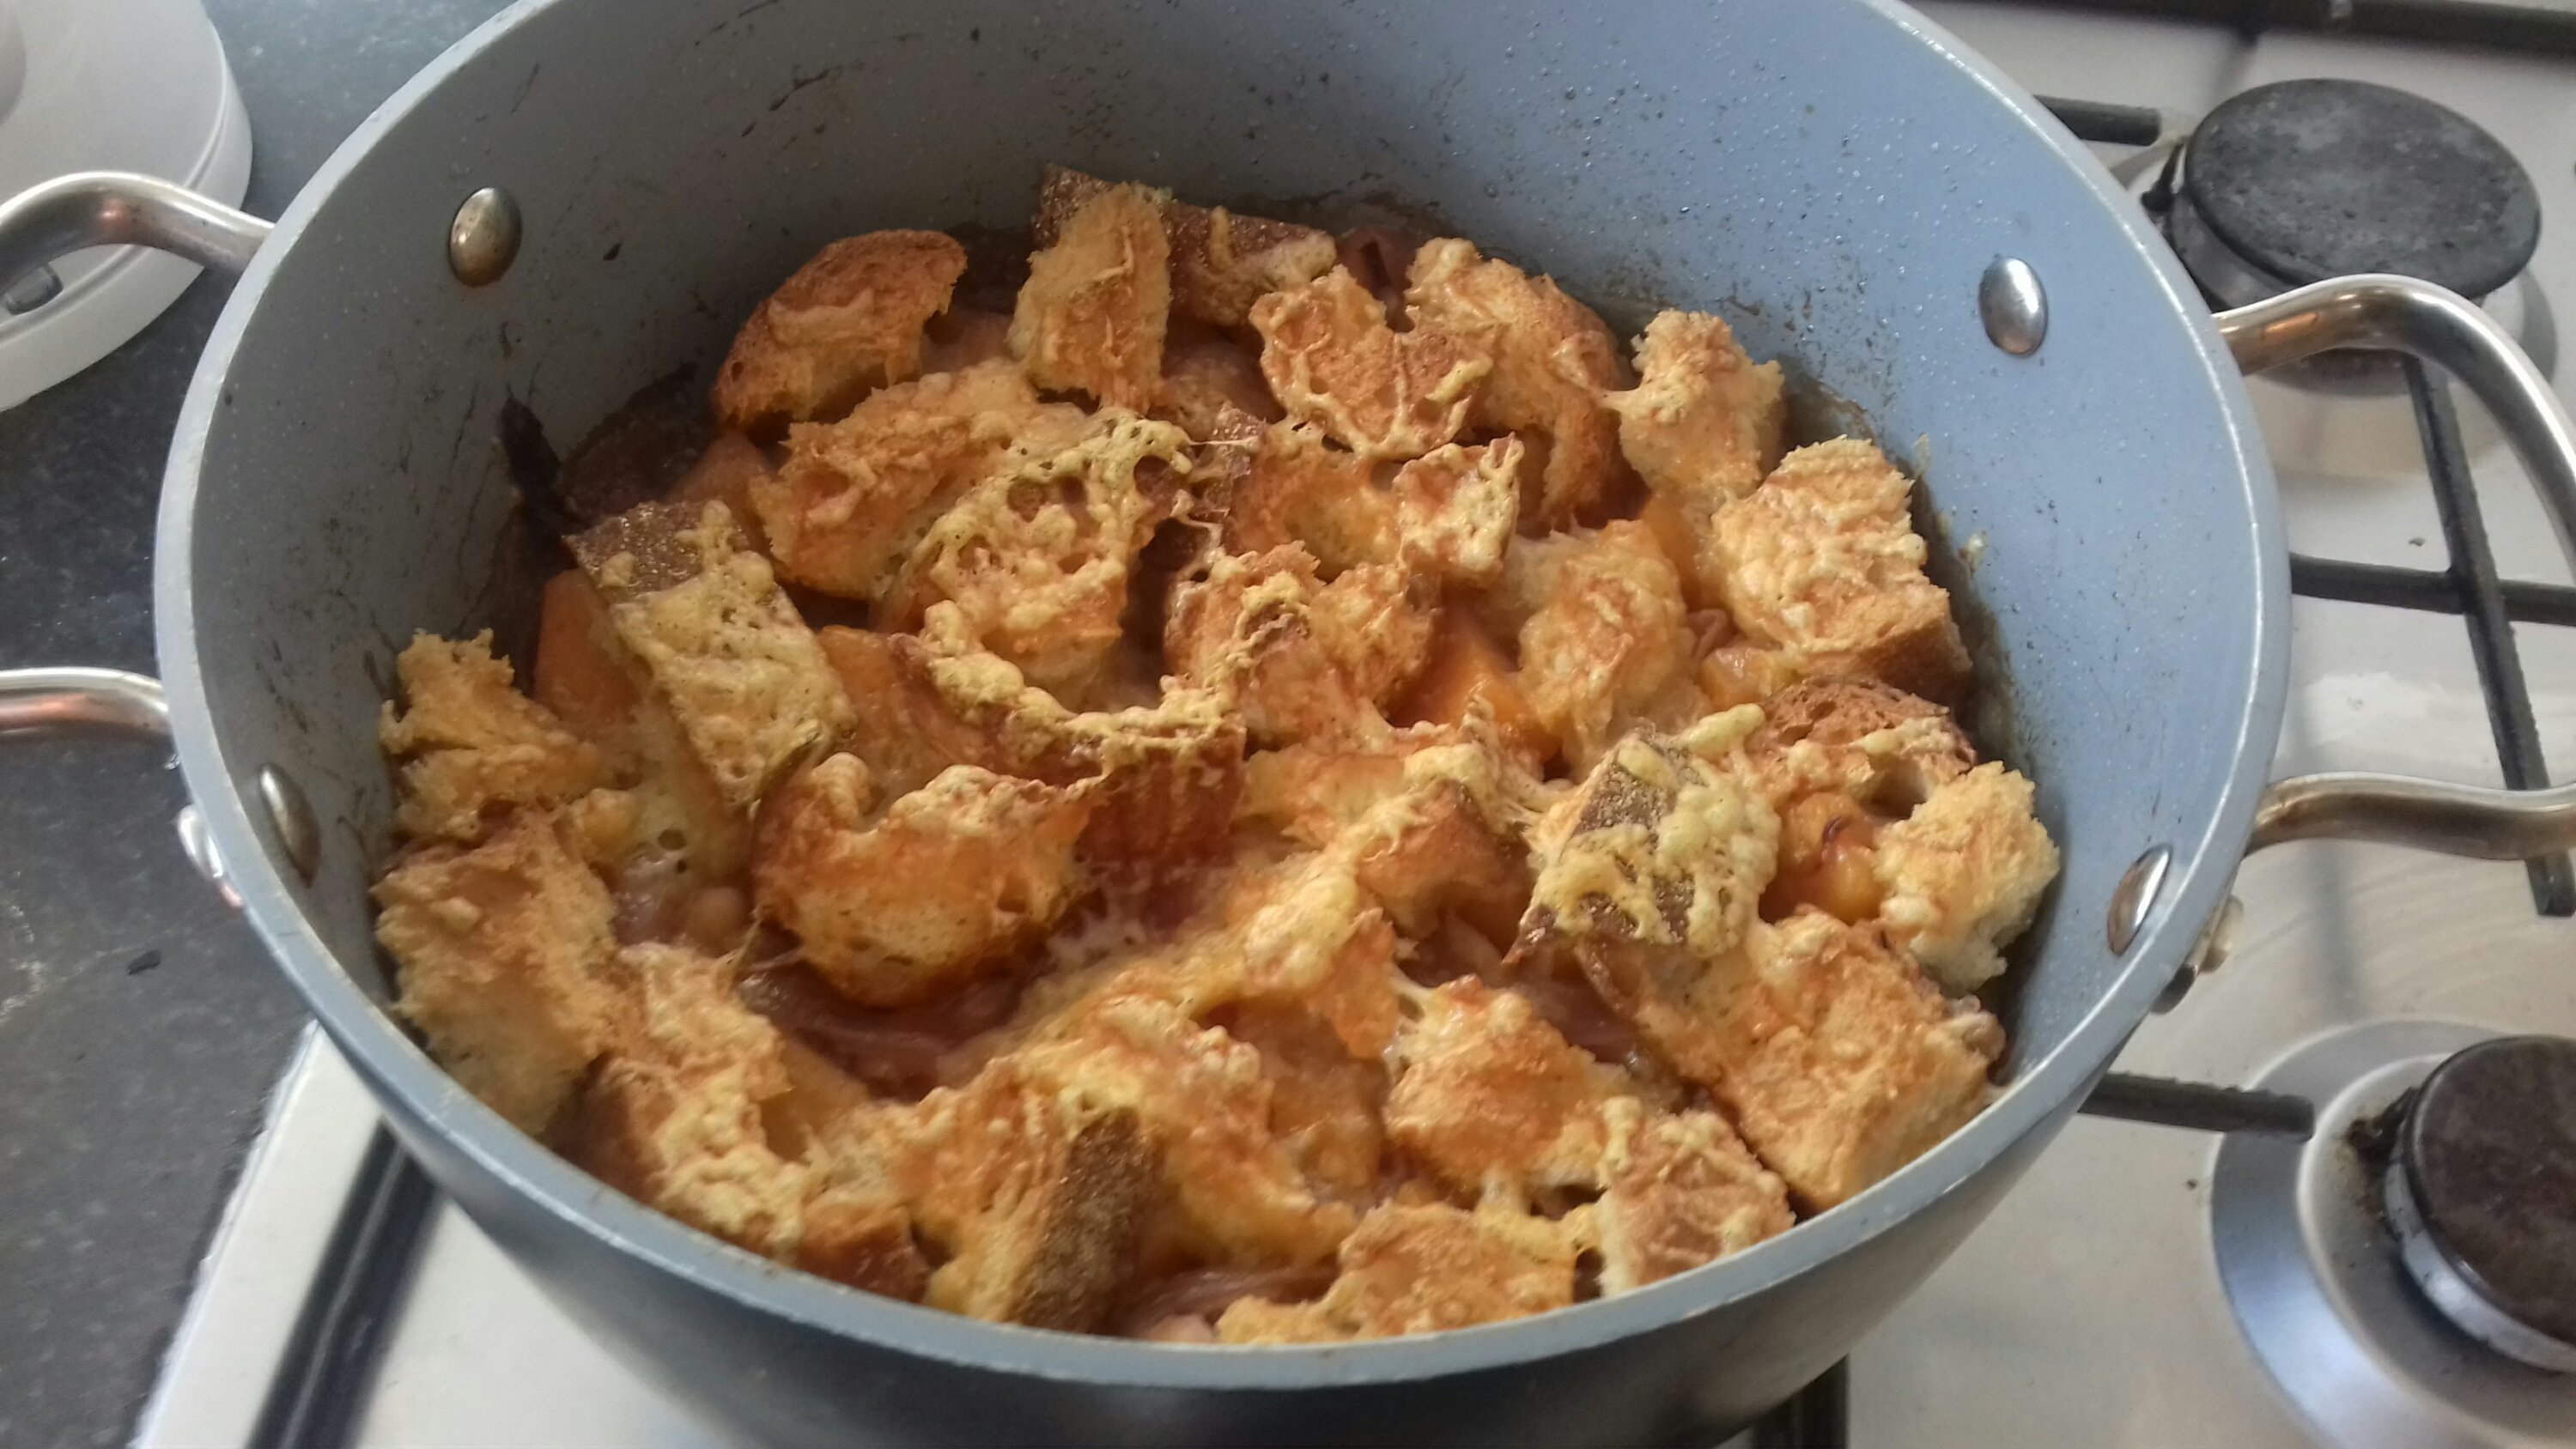 Image shows a cooked gratin in a round, black oven dish. The top is covered in chunky toasted bread and grated cheese.